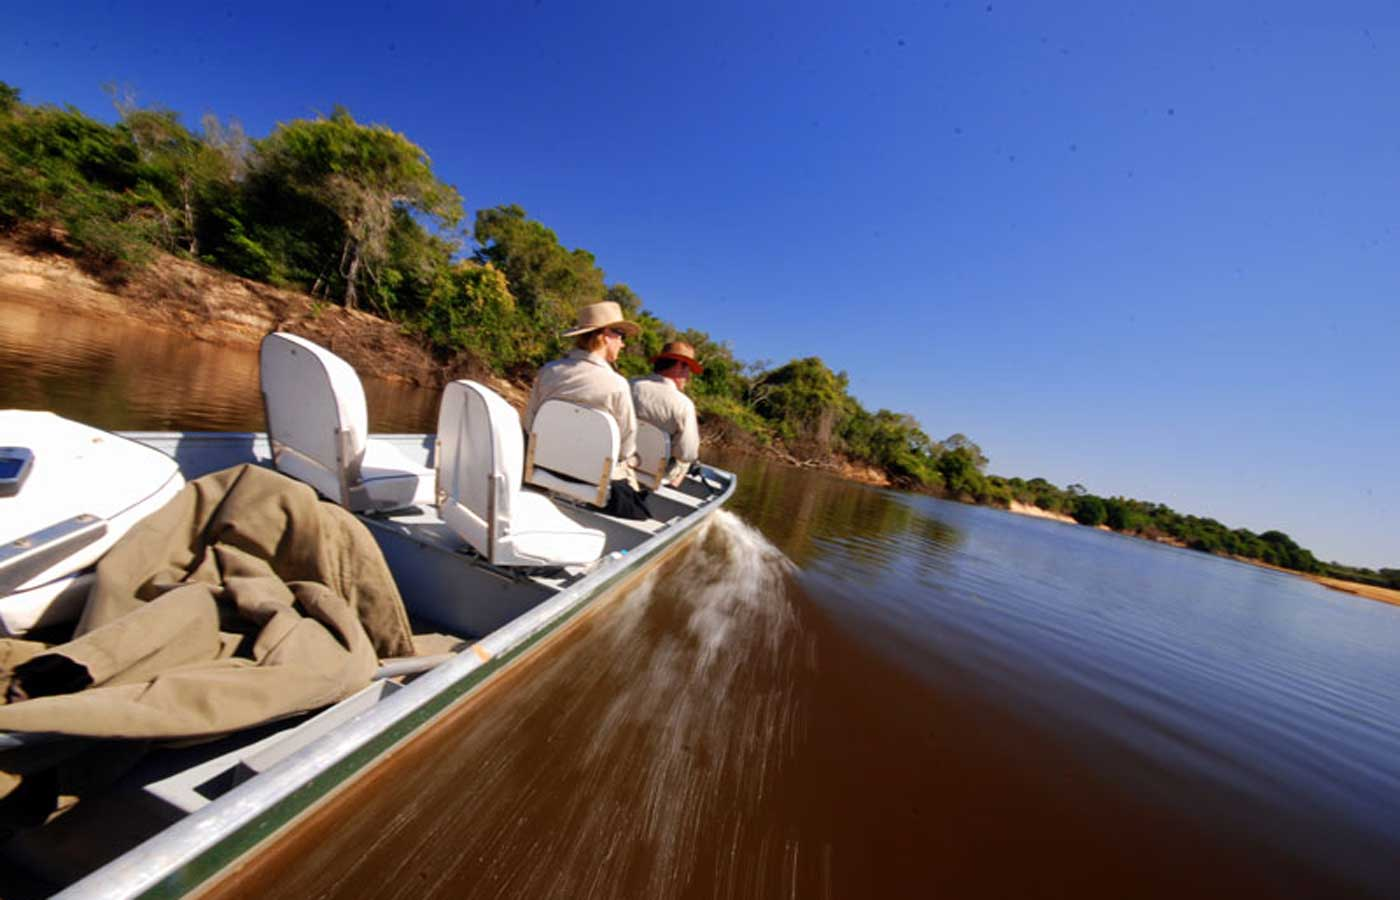 Exploring the Pantanal by boat at Fazenda Barranco Alto, Brazil